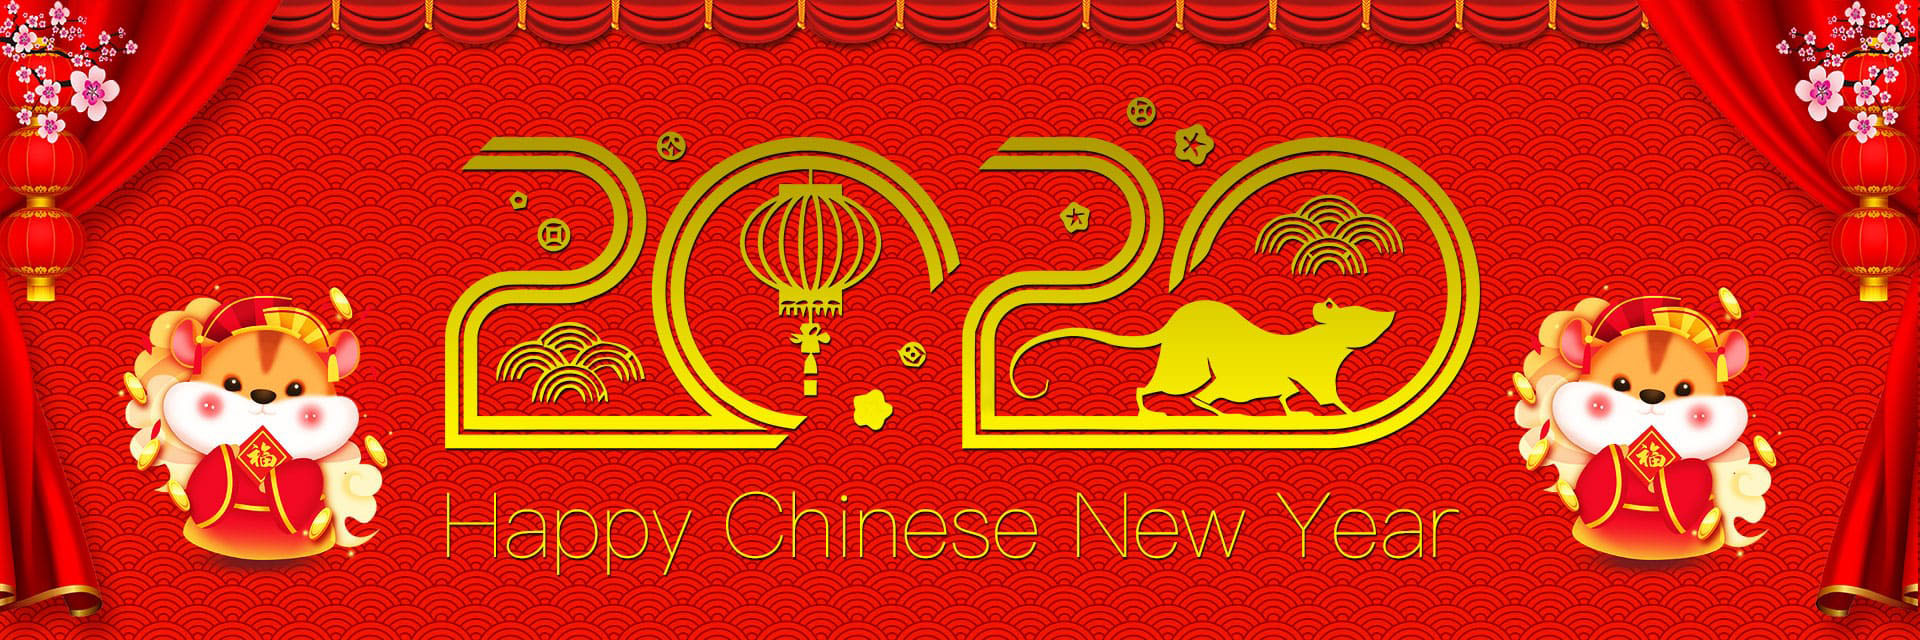 2020 Chinese New Year and Spring Festival Deals: Discount and Clearance CNC Routers, Laser Engravers, Laser Cutters, Plasma Cutters, Wood Lathes